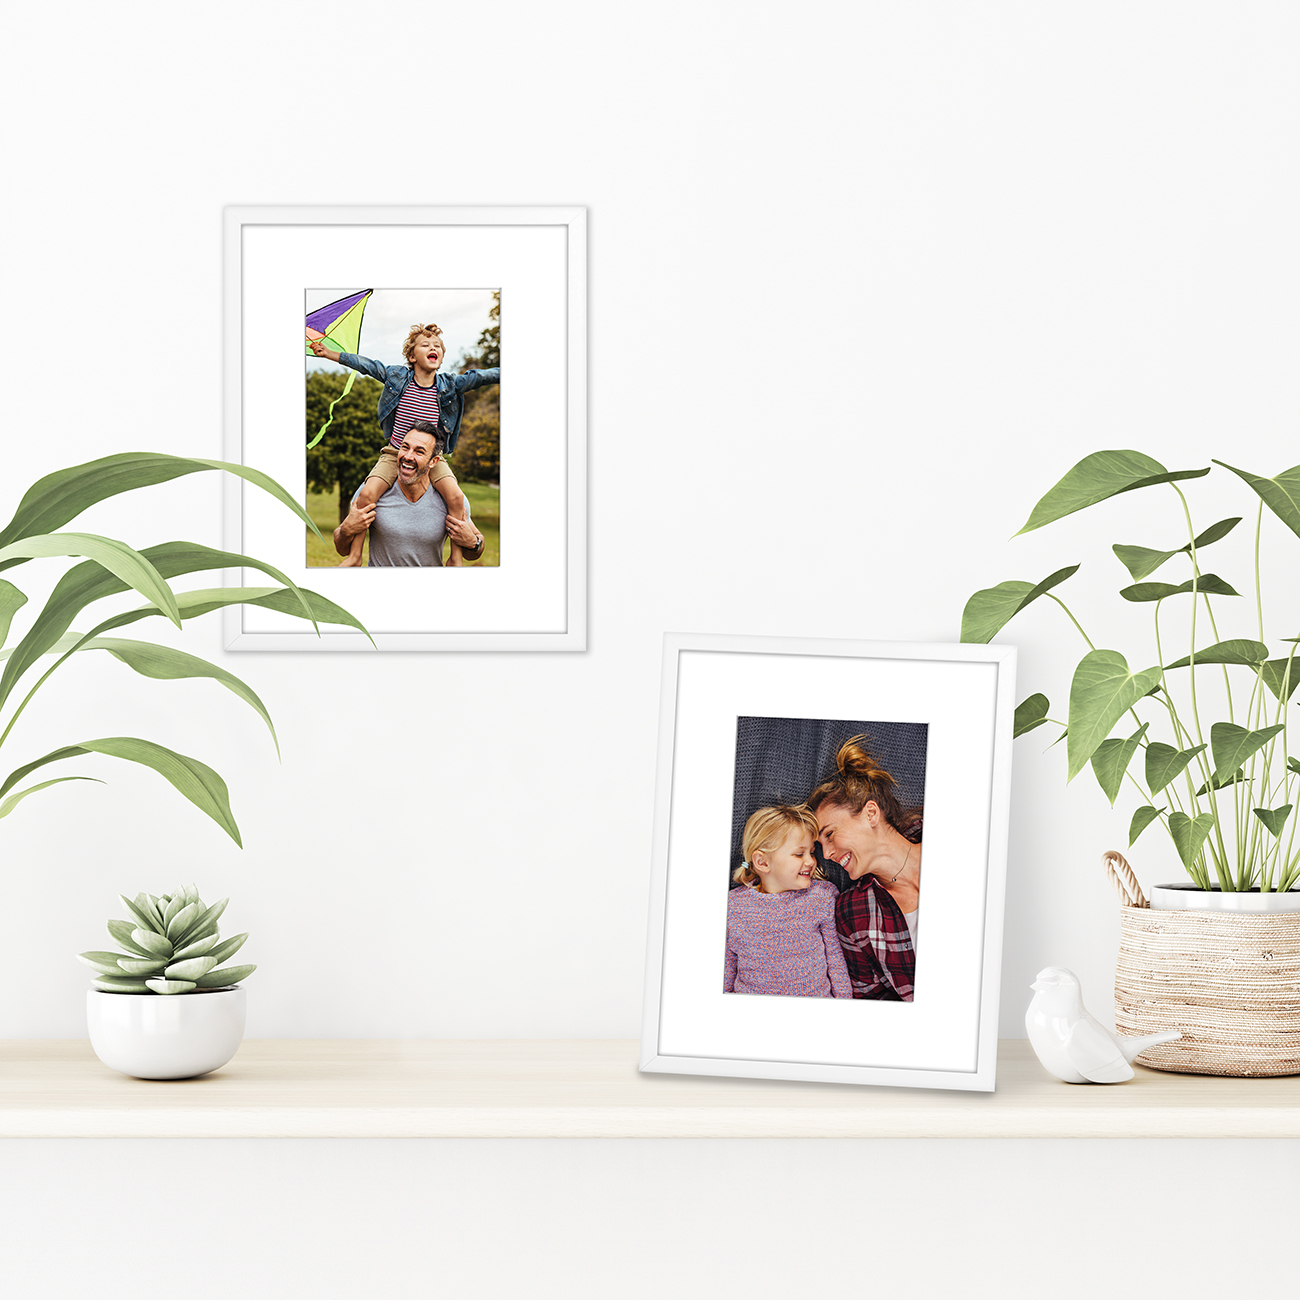 miniature 96 - Americanflat Thin Picture Frame 5x7 8x10 11x14 8.5x11 Wall Tabletop Pick Color